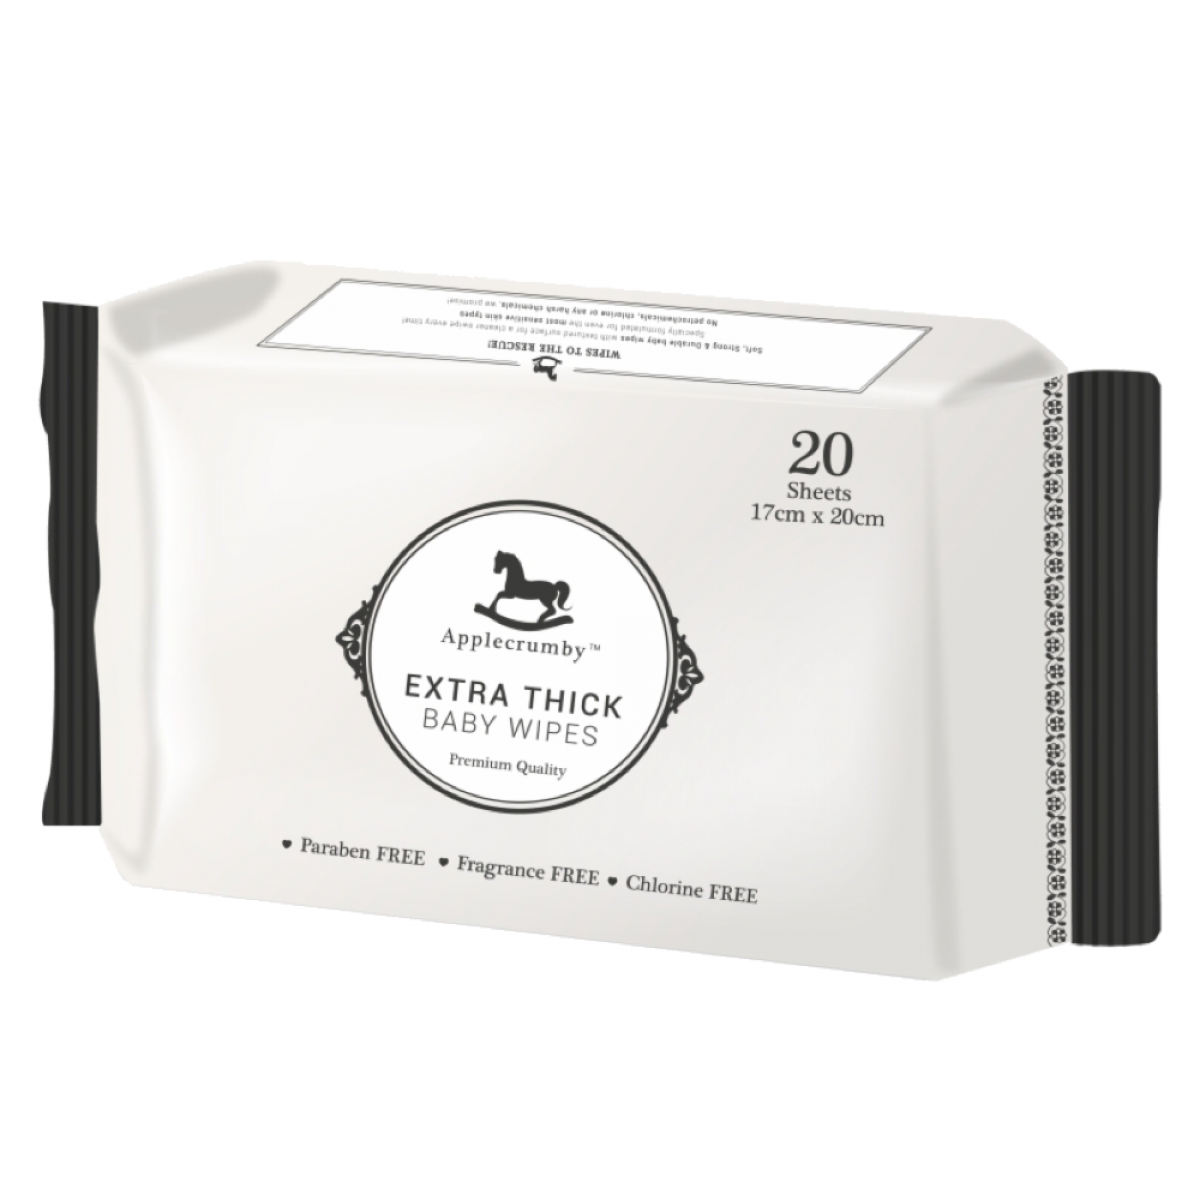 Applecrumby™ Extra Thick Premium Baby Wipes (20 sheets)